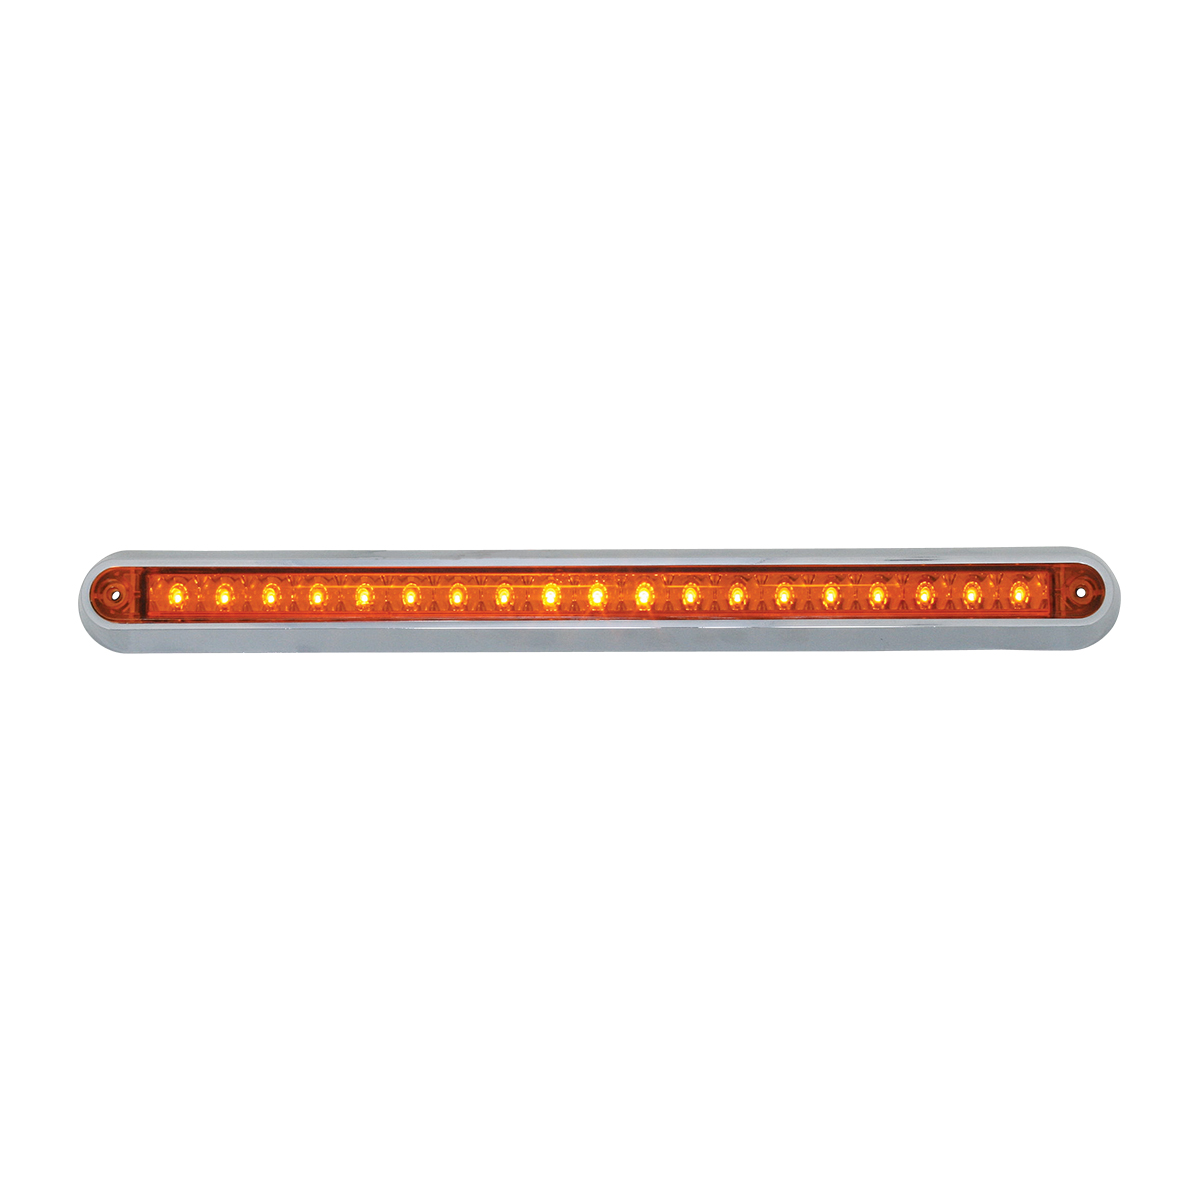 "76290 12"" Surface Mount Light Bar with Chrome Plastic Base"